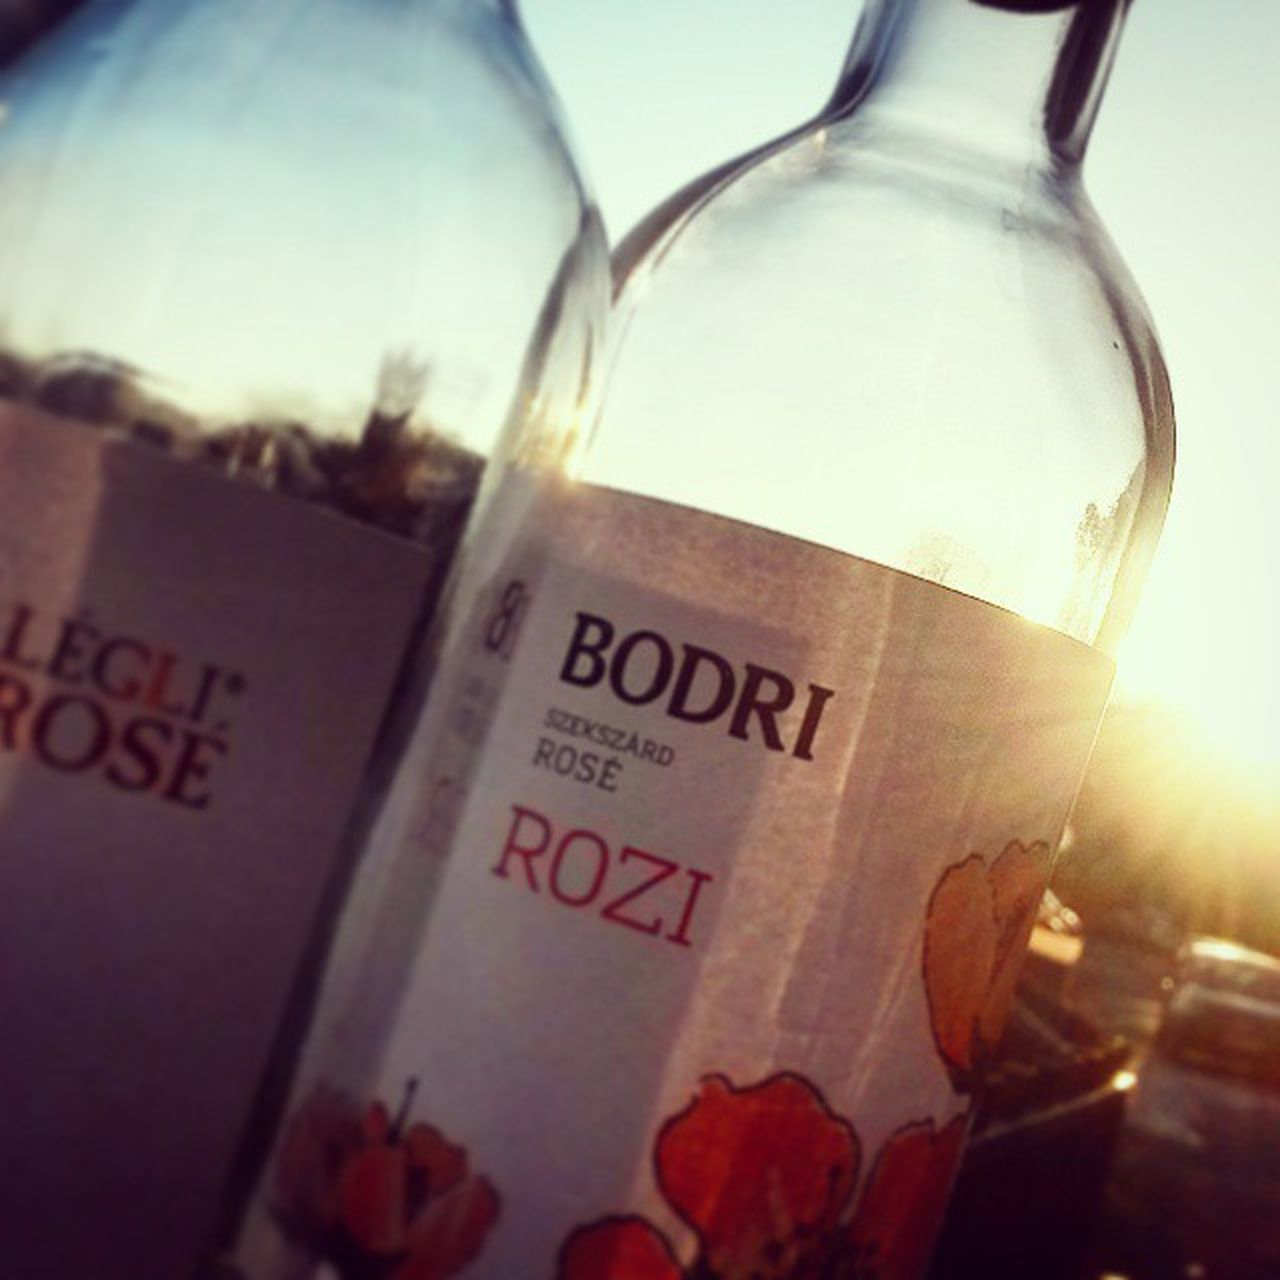 Rozi Love Roze Rosé Wine Finally Together NINI Obuda Definitely Spring Fourfiveseconds